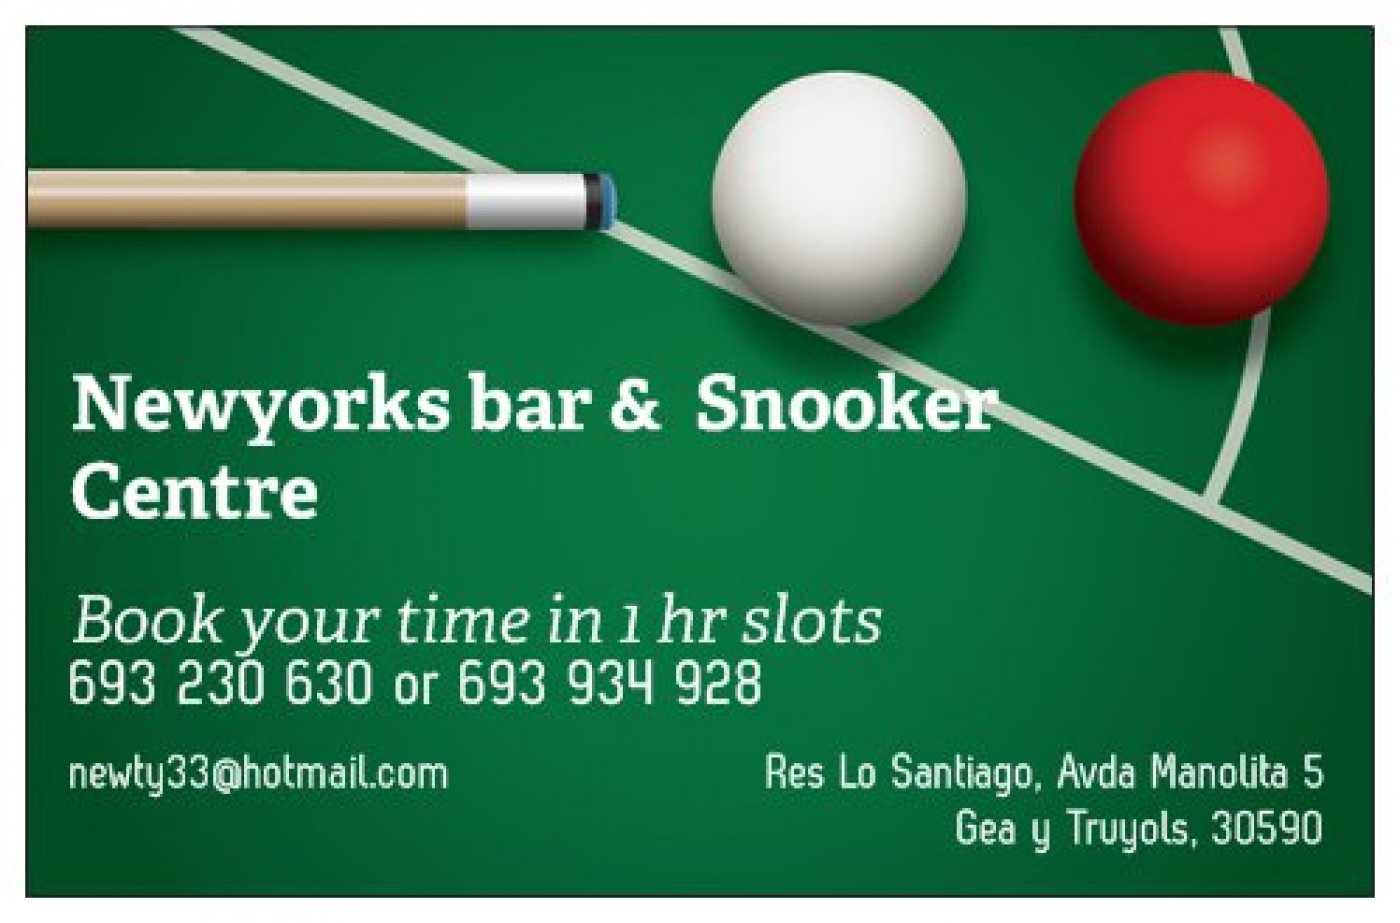 New Yorks bar, restaurant and snooker centre